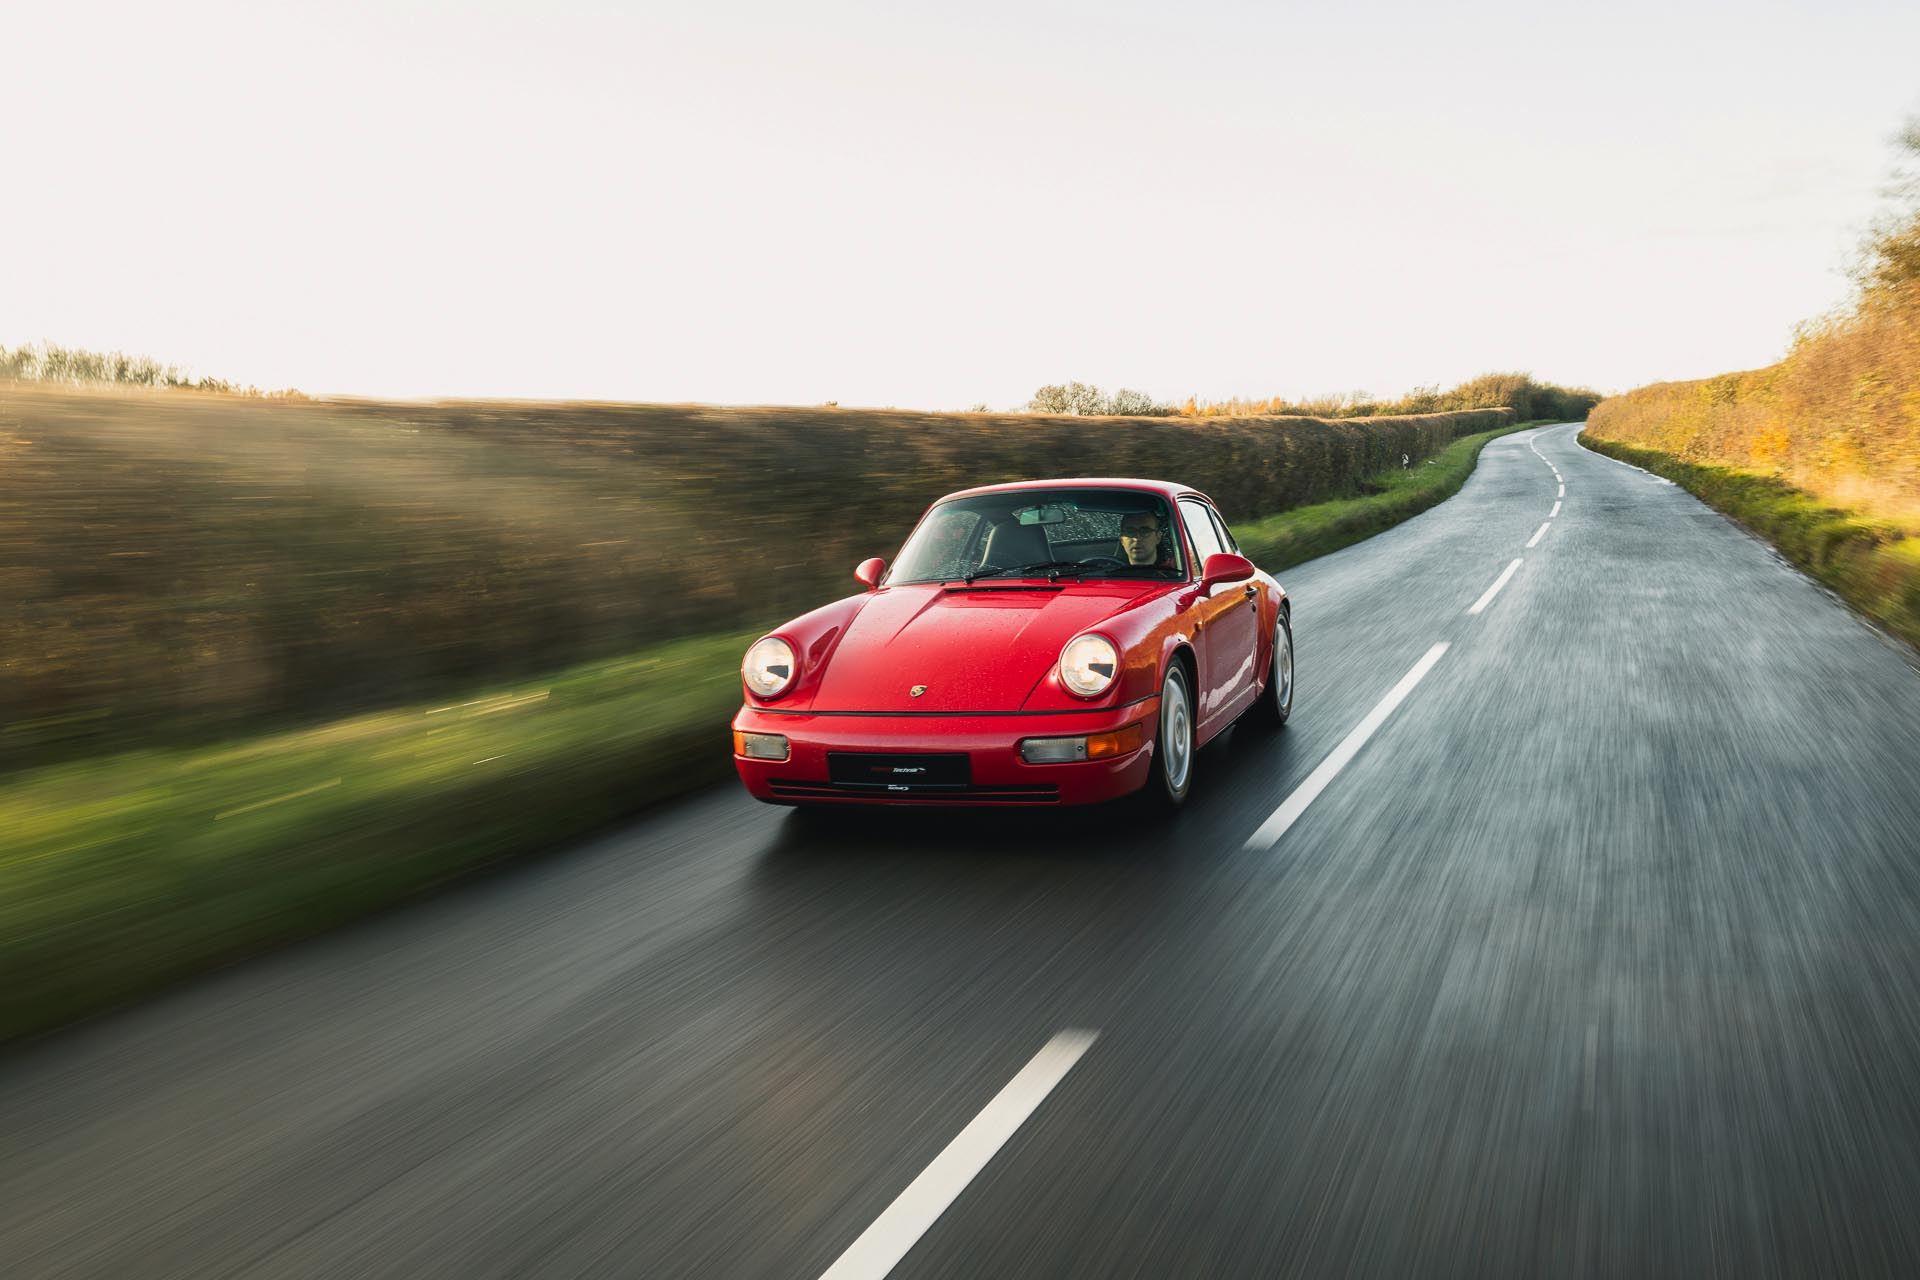 964 carrera rs driving in countryside